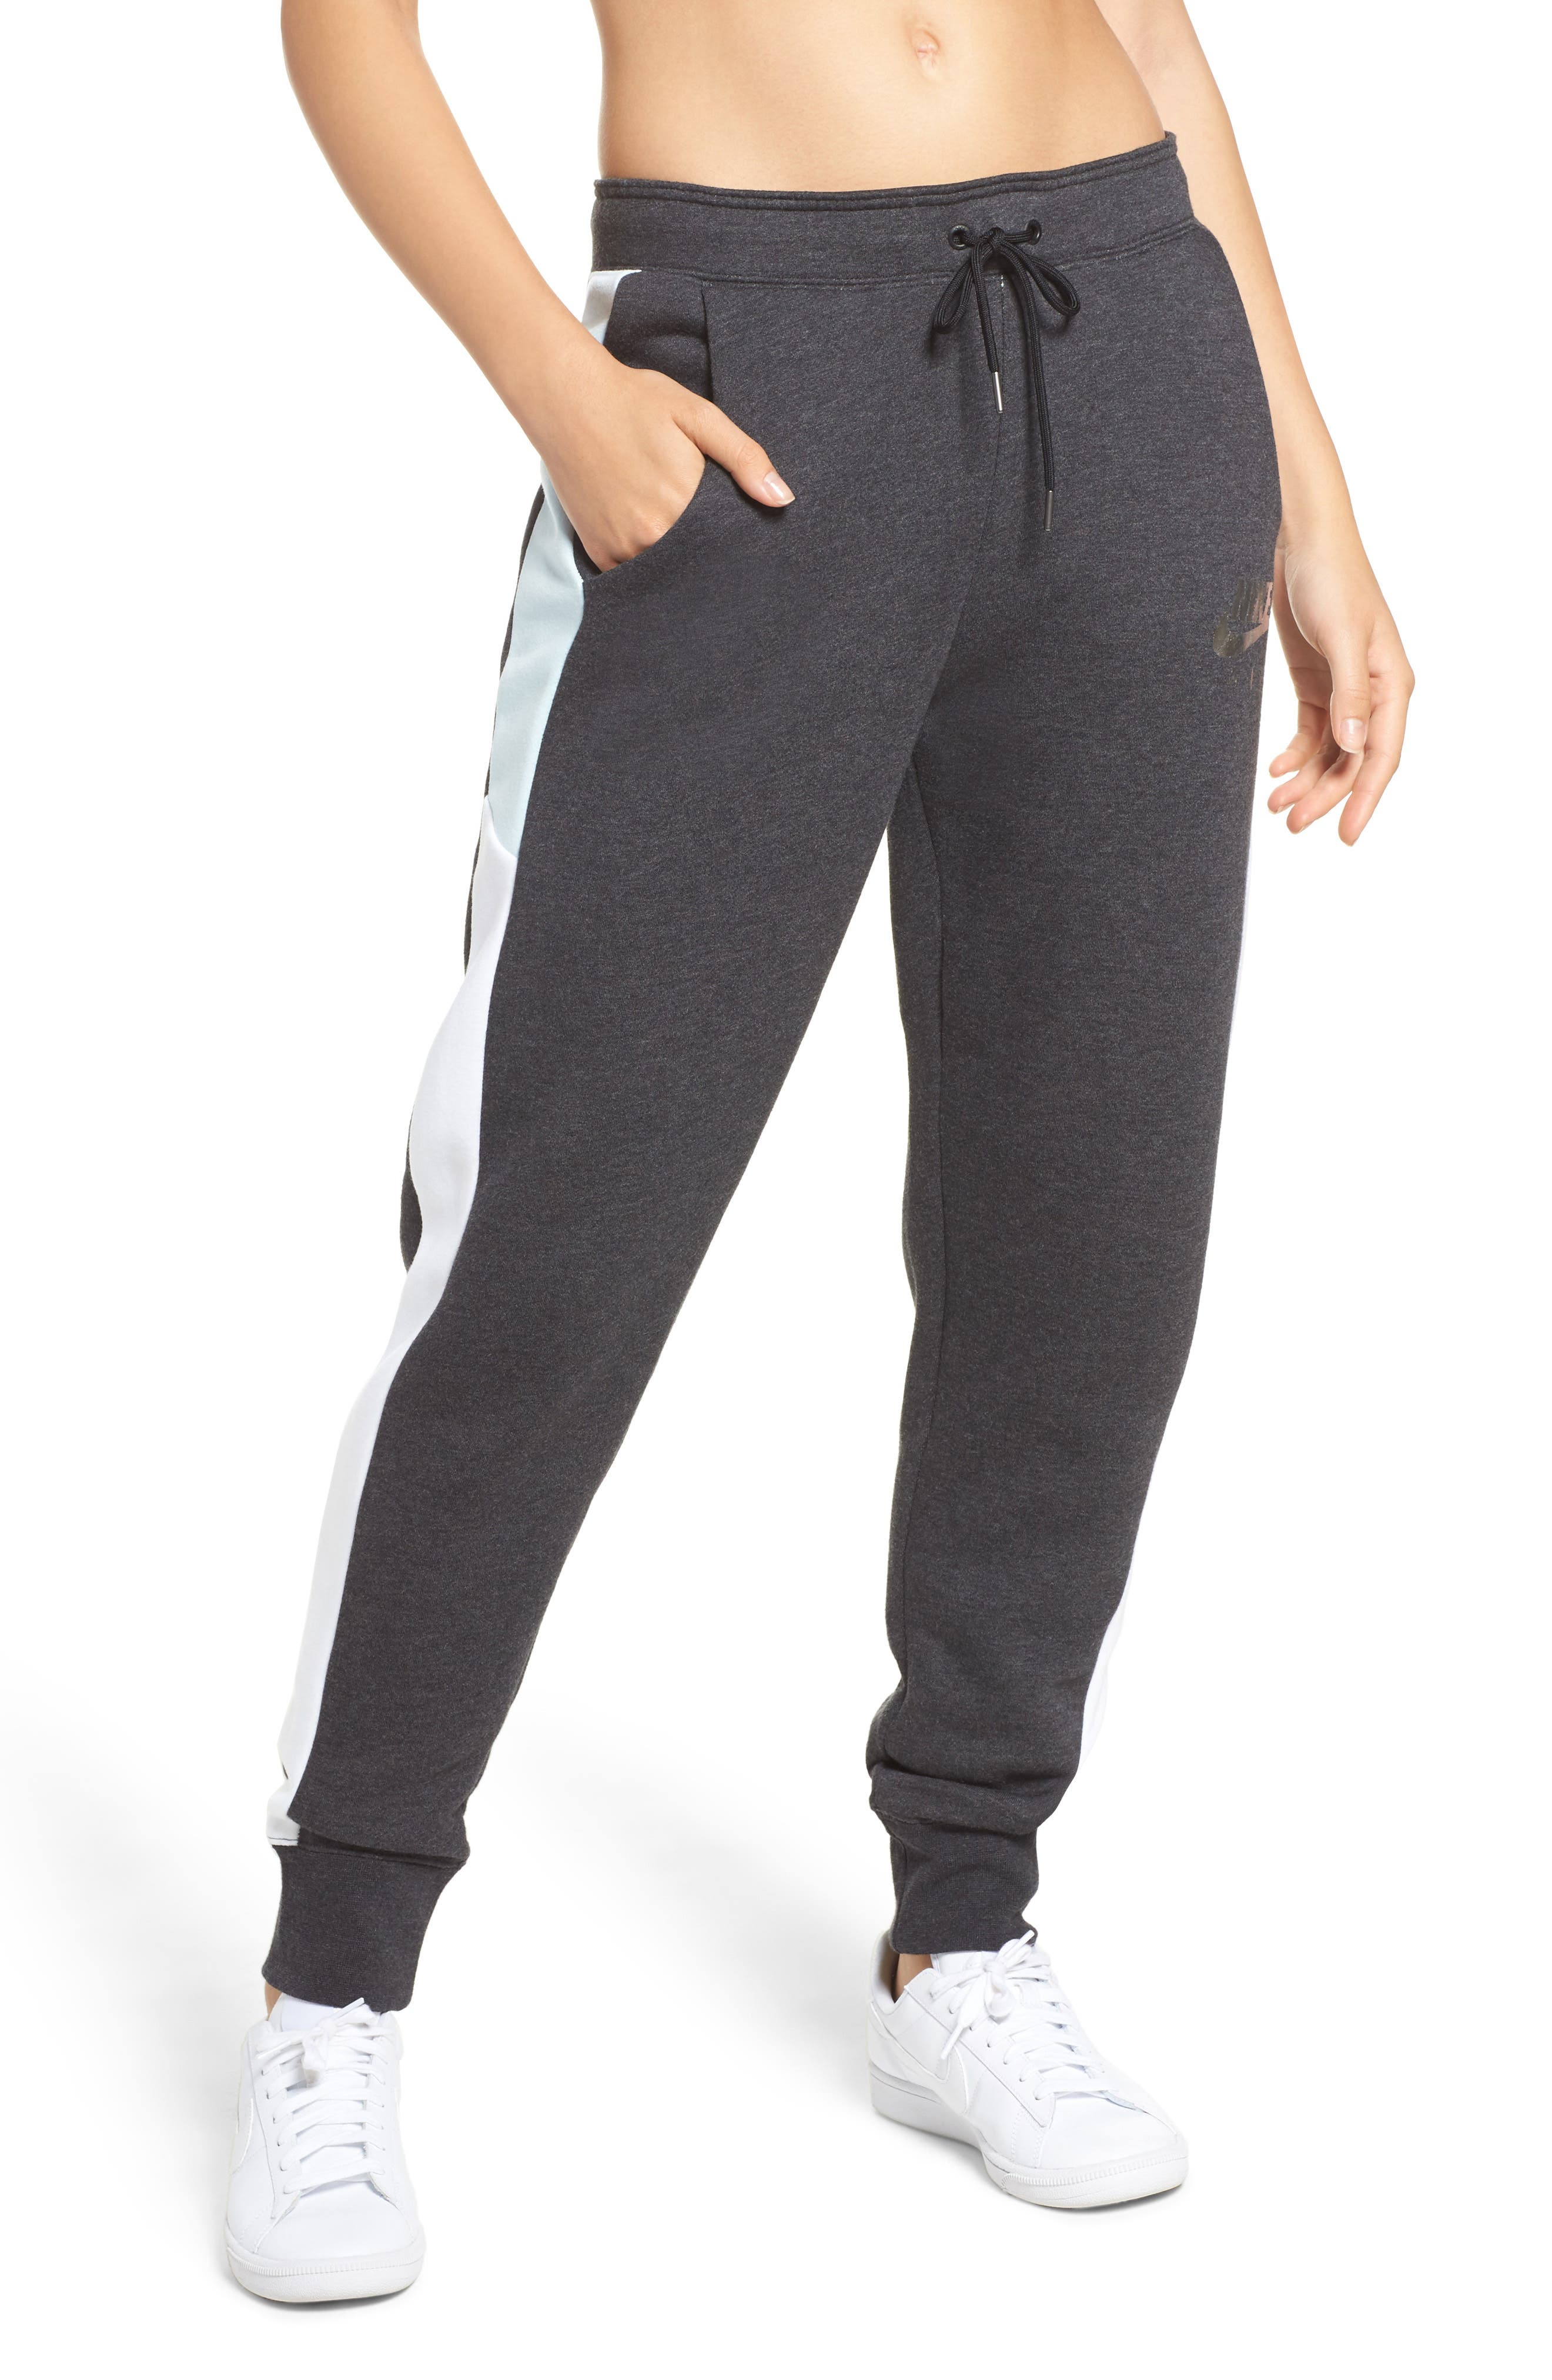 Rally Sweatpants,                             Main thumbnail 1, color,                             Black Htr/ White/ Glacier Blue